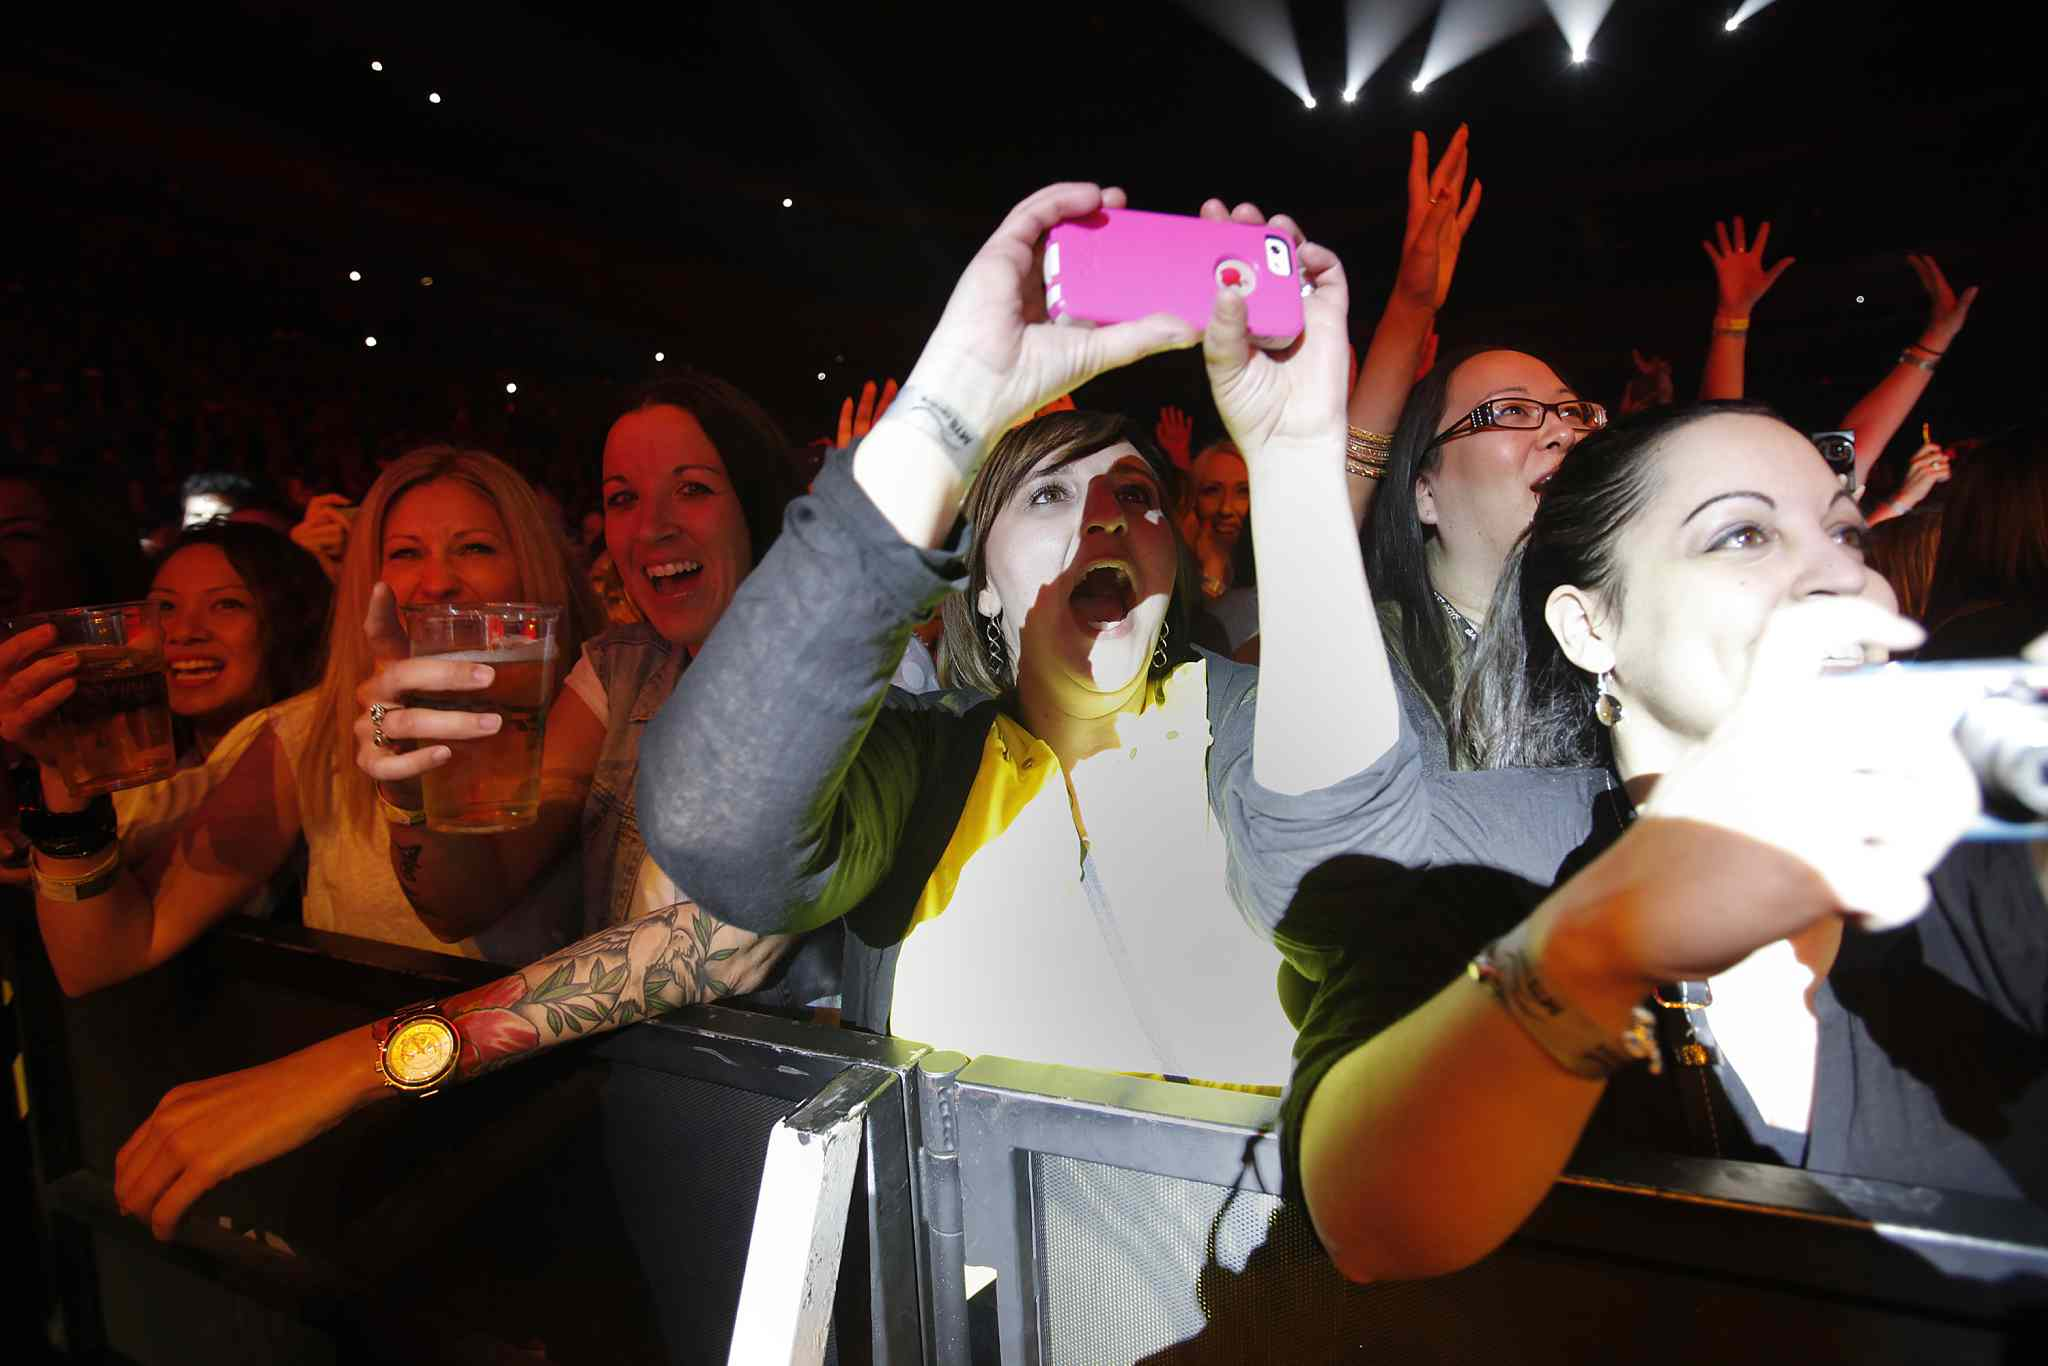 A fan takes a picture while the Backstreet Boys perform at the MTS Centre Sunday night.